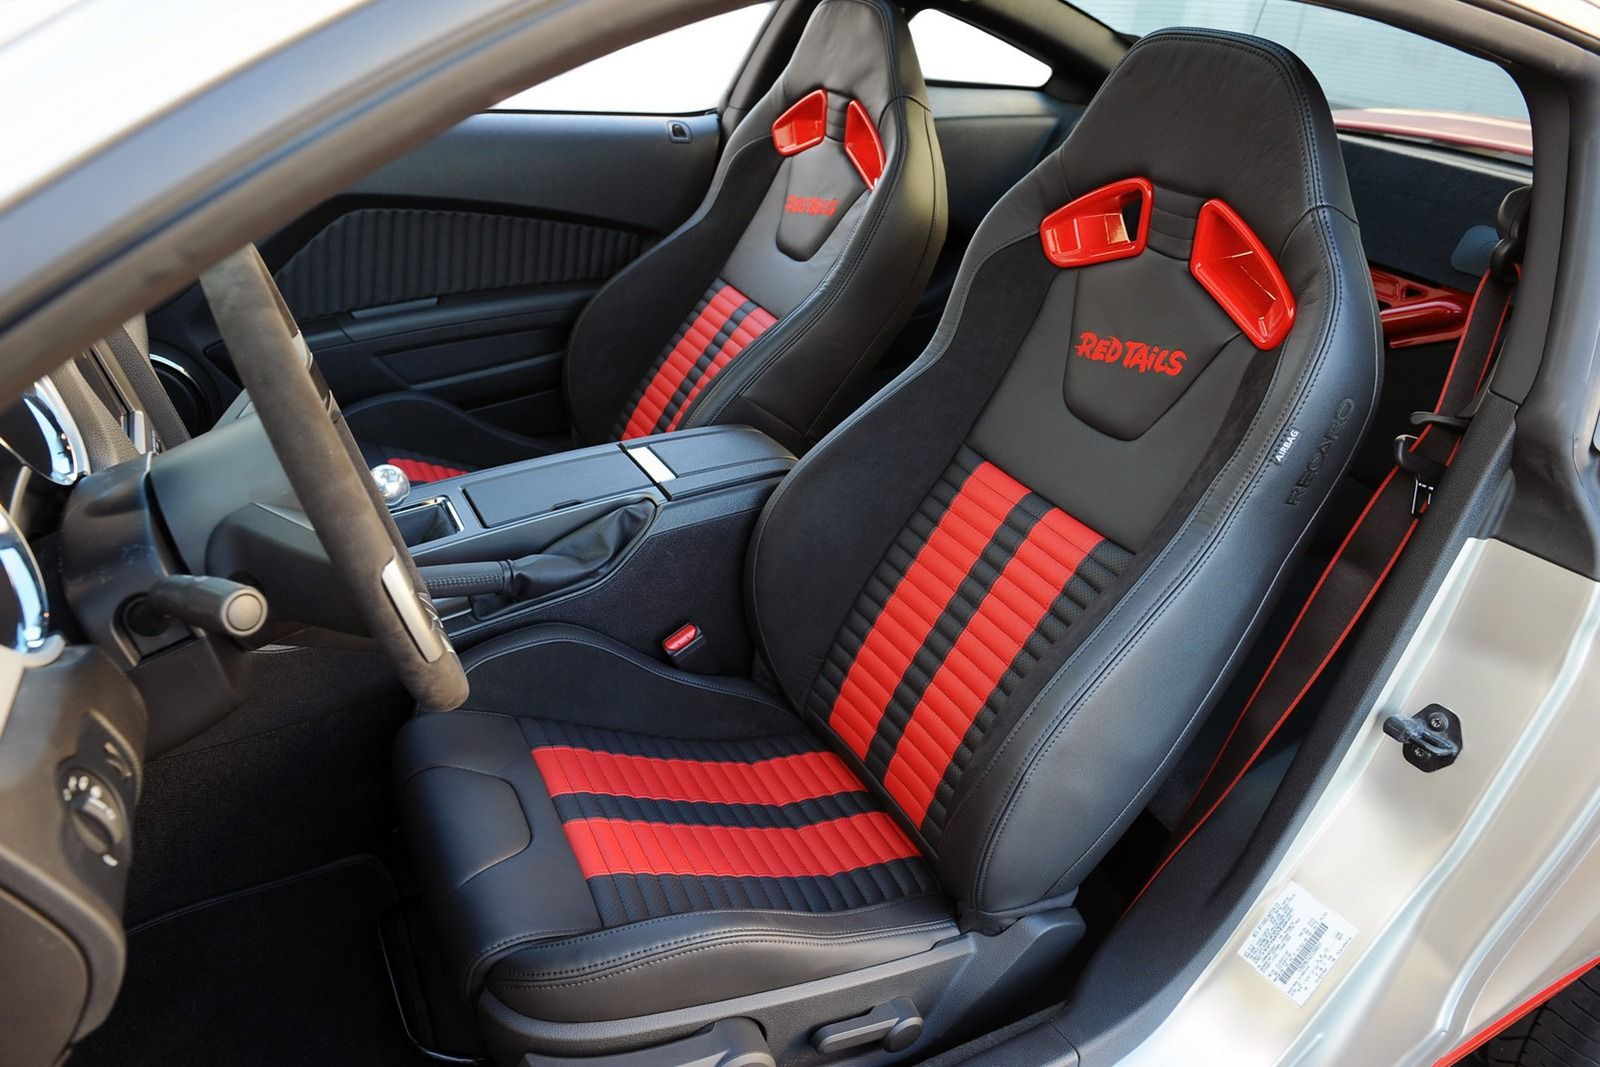 Red Tails Edition Of The 2013 Ford Mustang Gt Coupe Interior